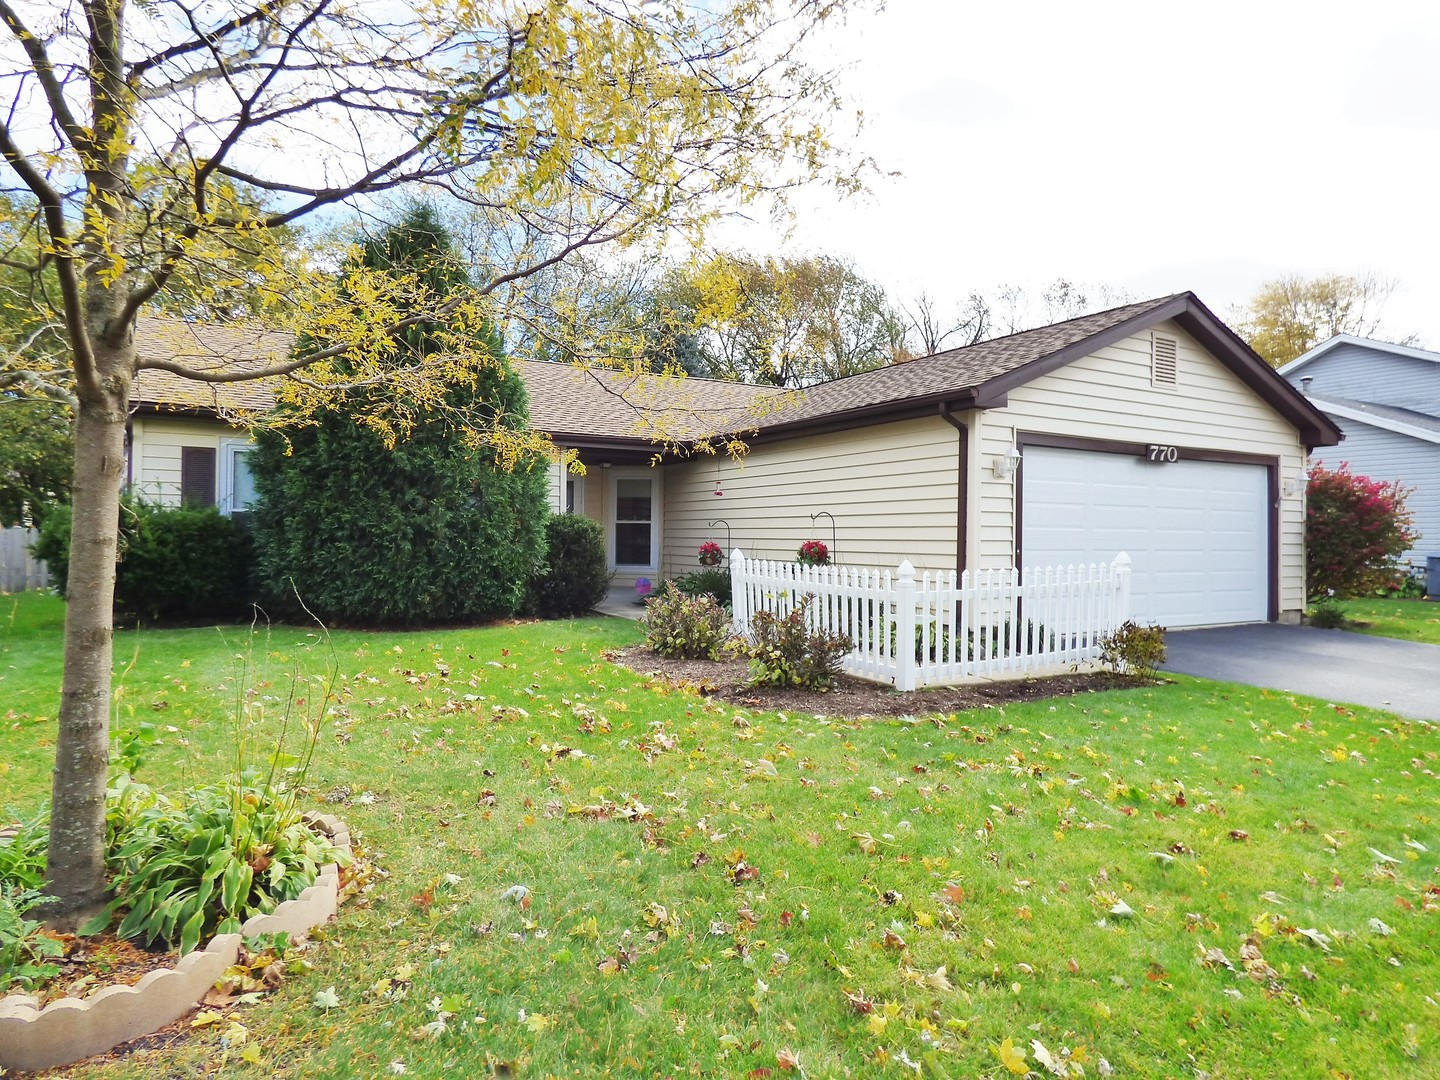 770 Applewood Lane, Algonquin in Mc Henry County, IL 60102 Home for Sale